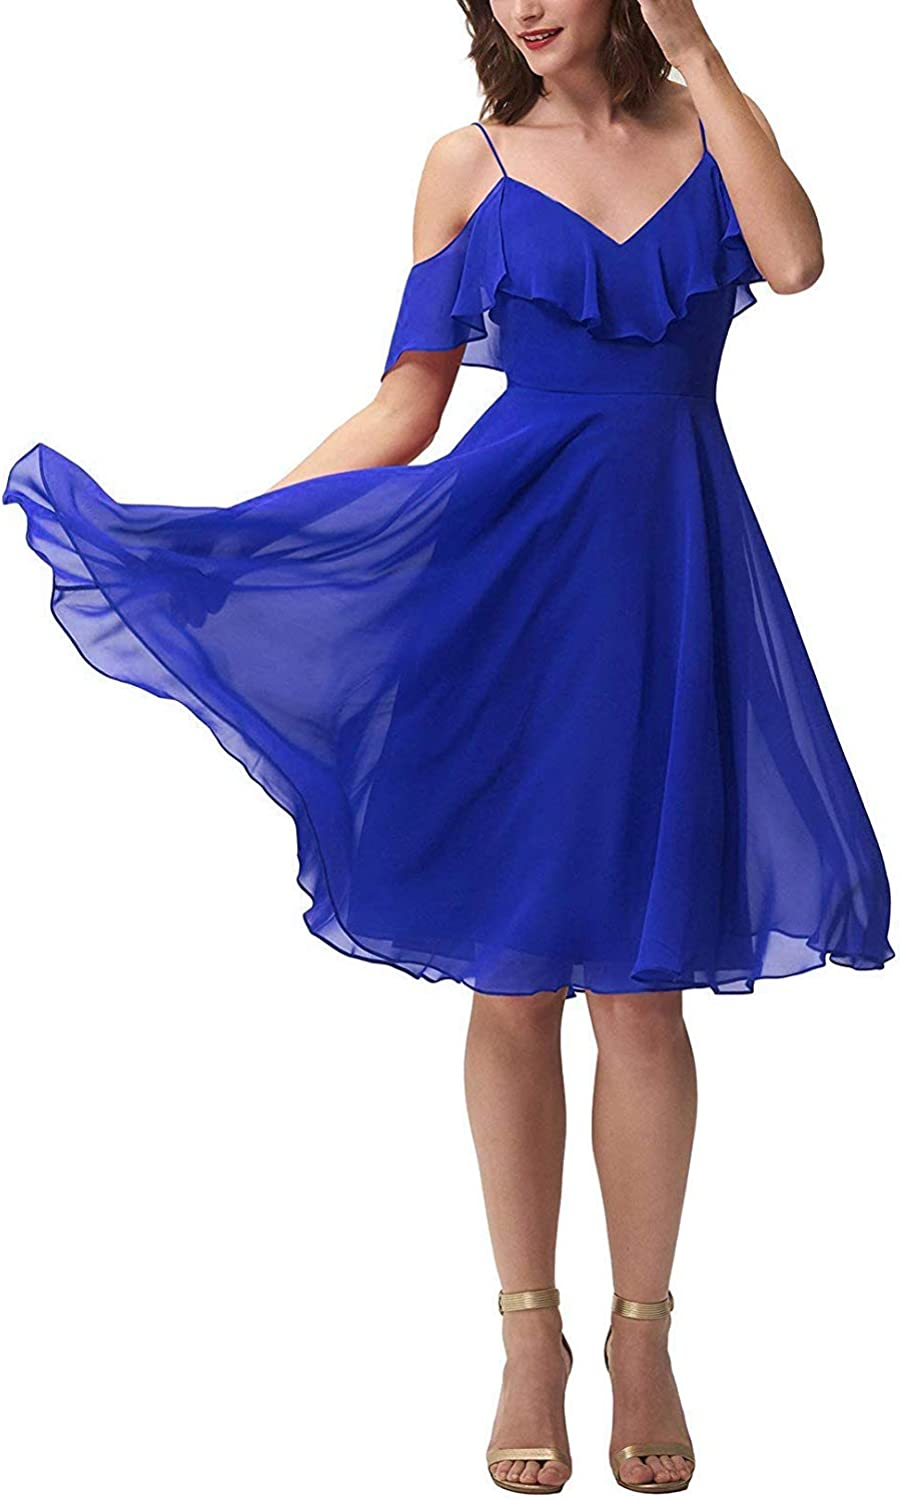 DressyMe Women's Short Bridesmaid Dress Off The Shoulder Flounce Homecoming Gown